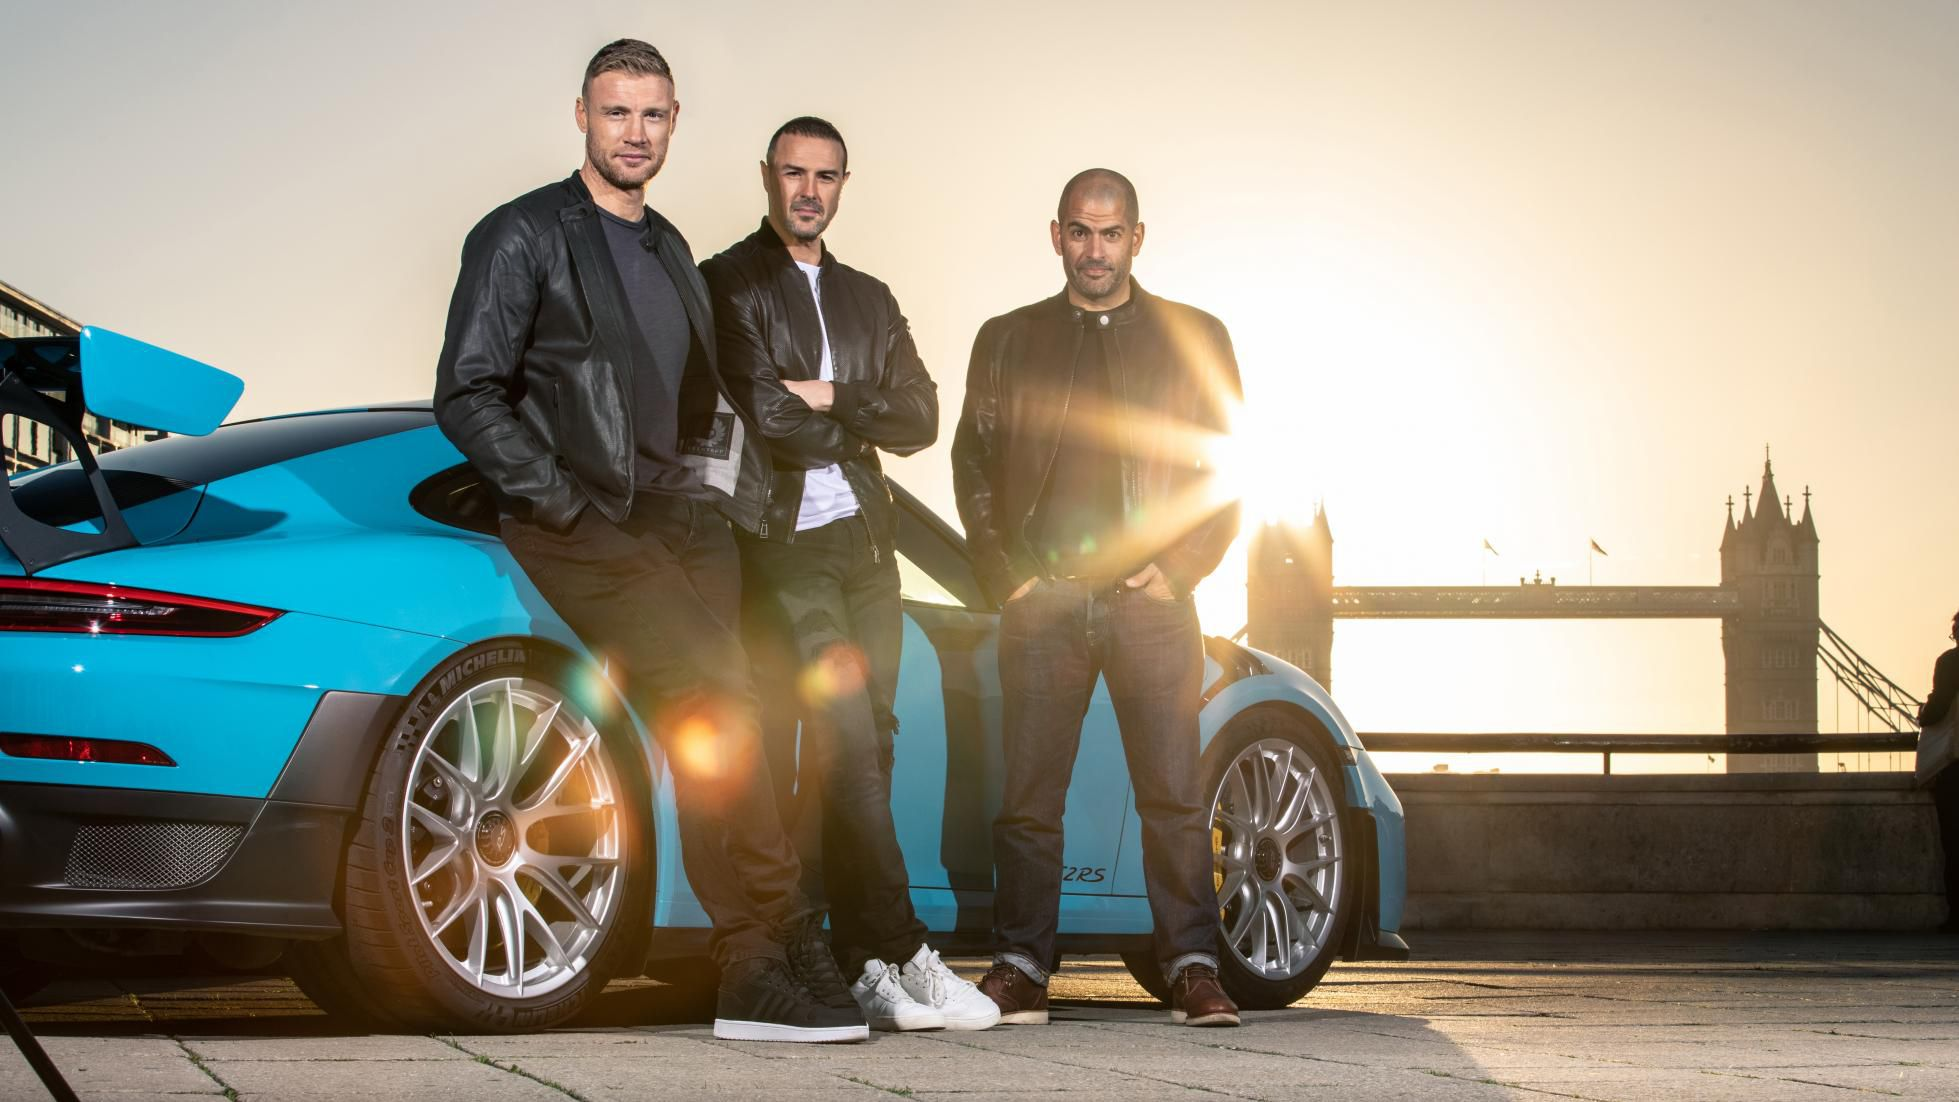 New hosts of the Top Gear alongside a blue car. All three are wearing leather jackets and jeans